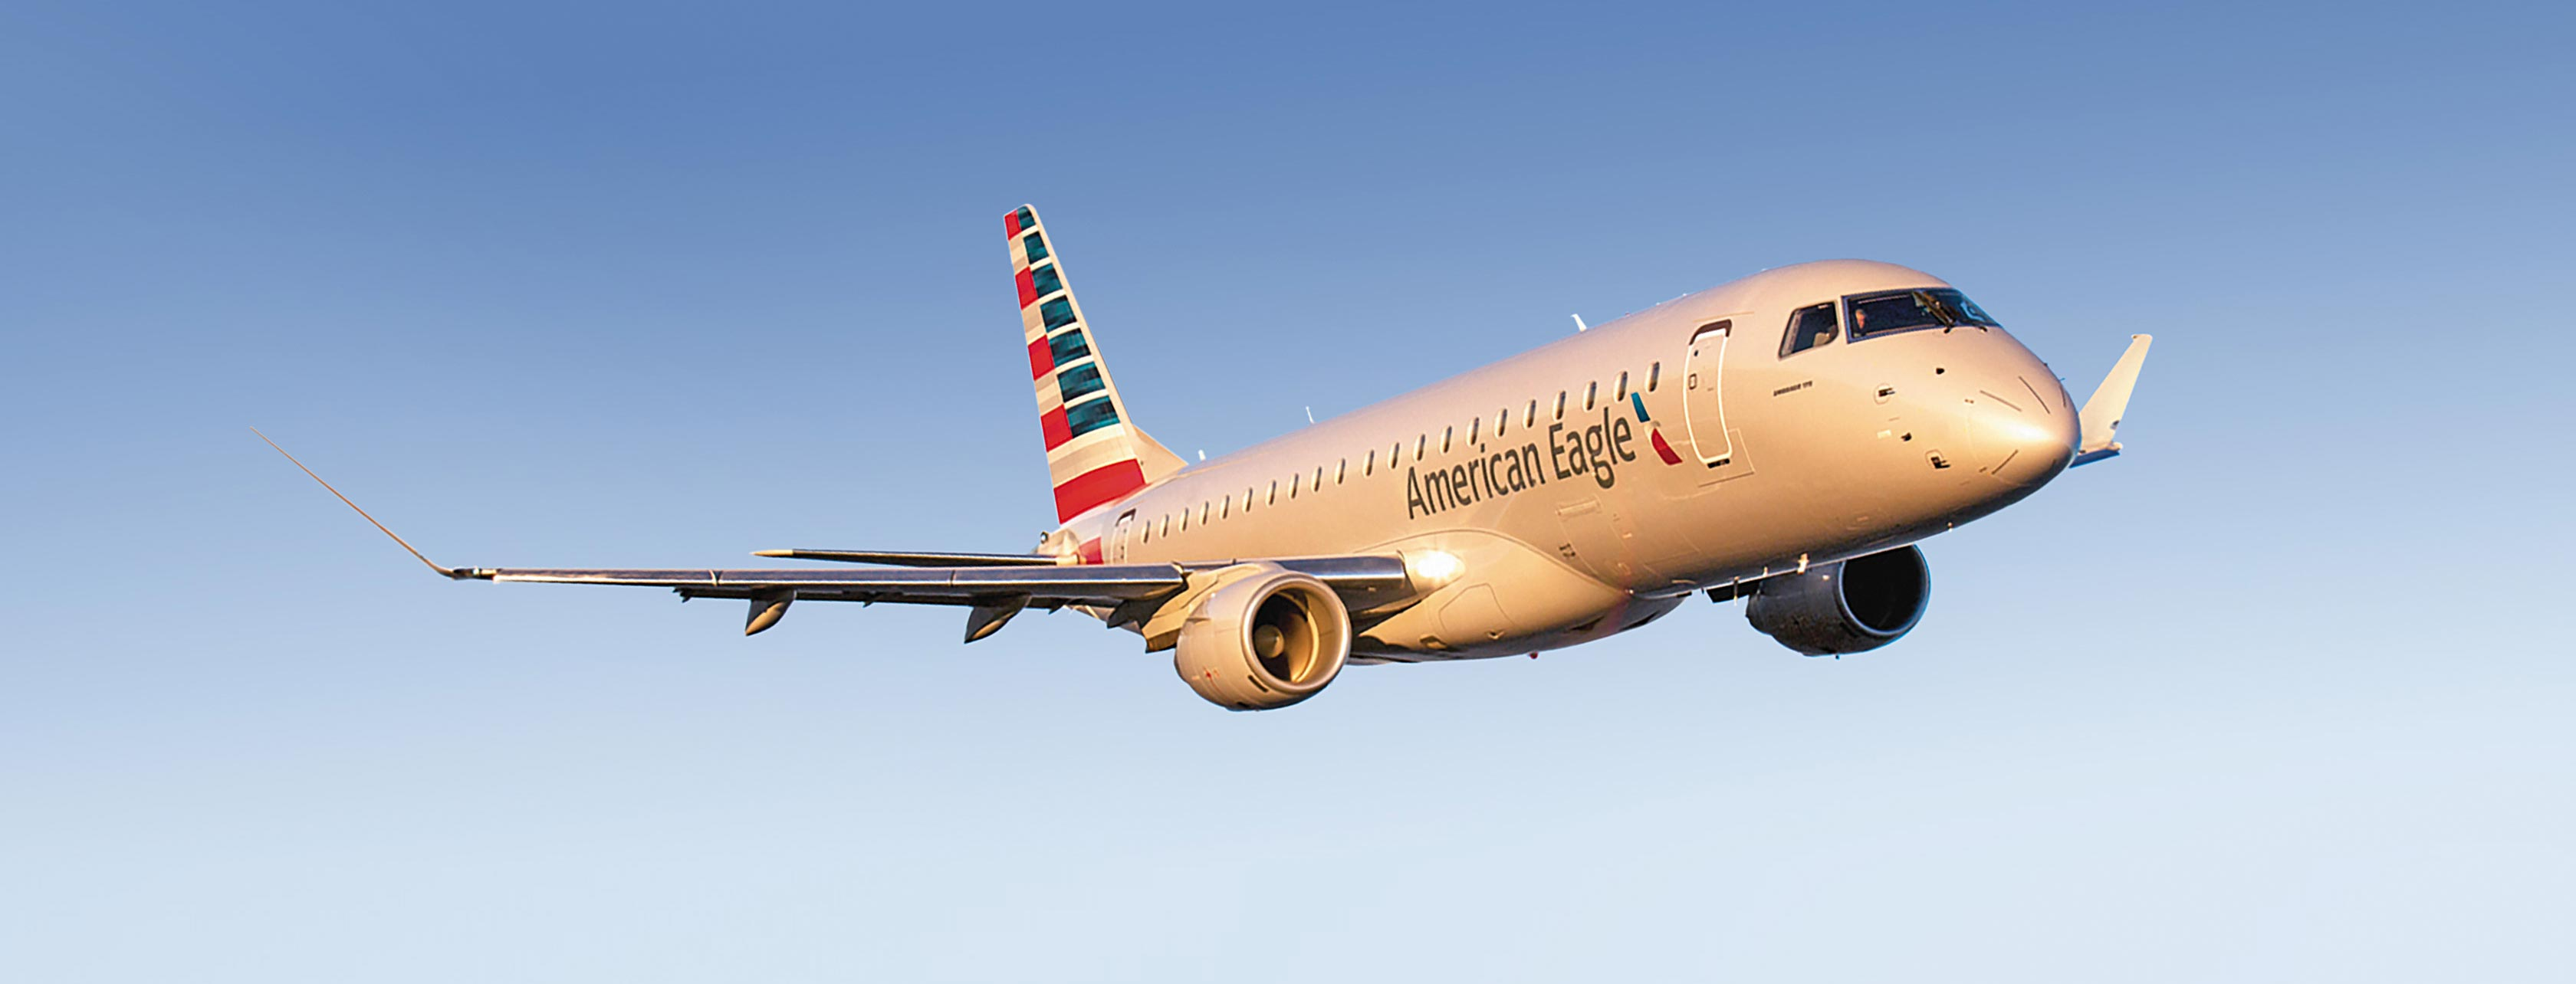 Become a Commercial Pilot - Fly an American Eagle ERJ